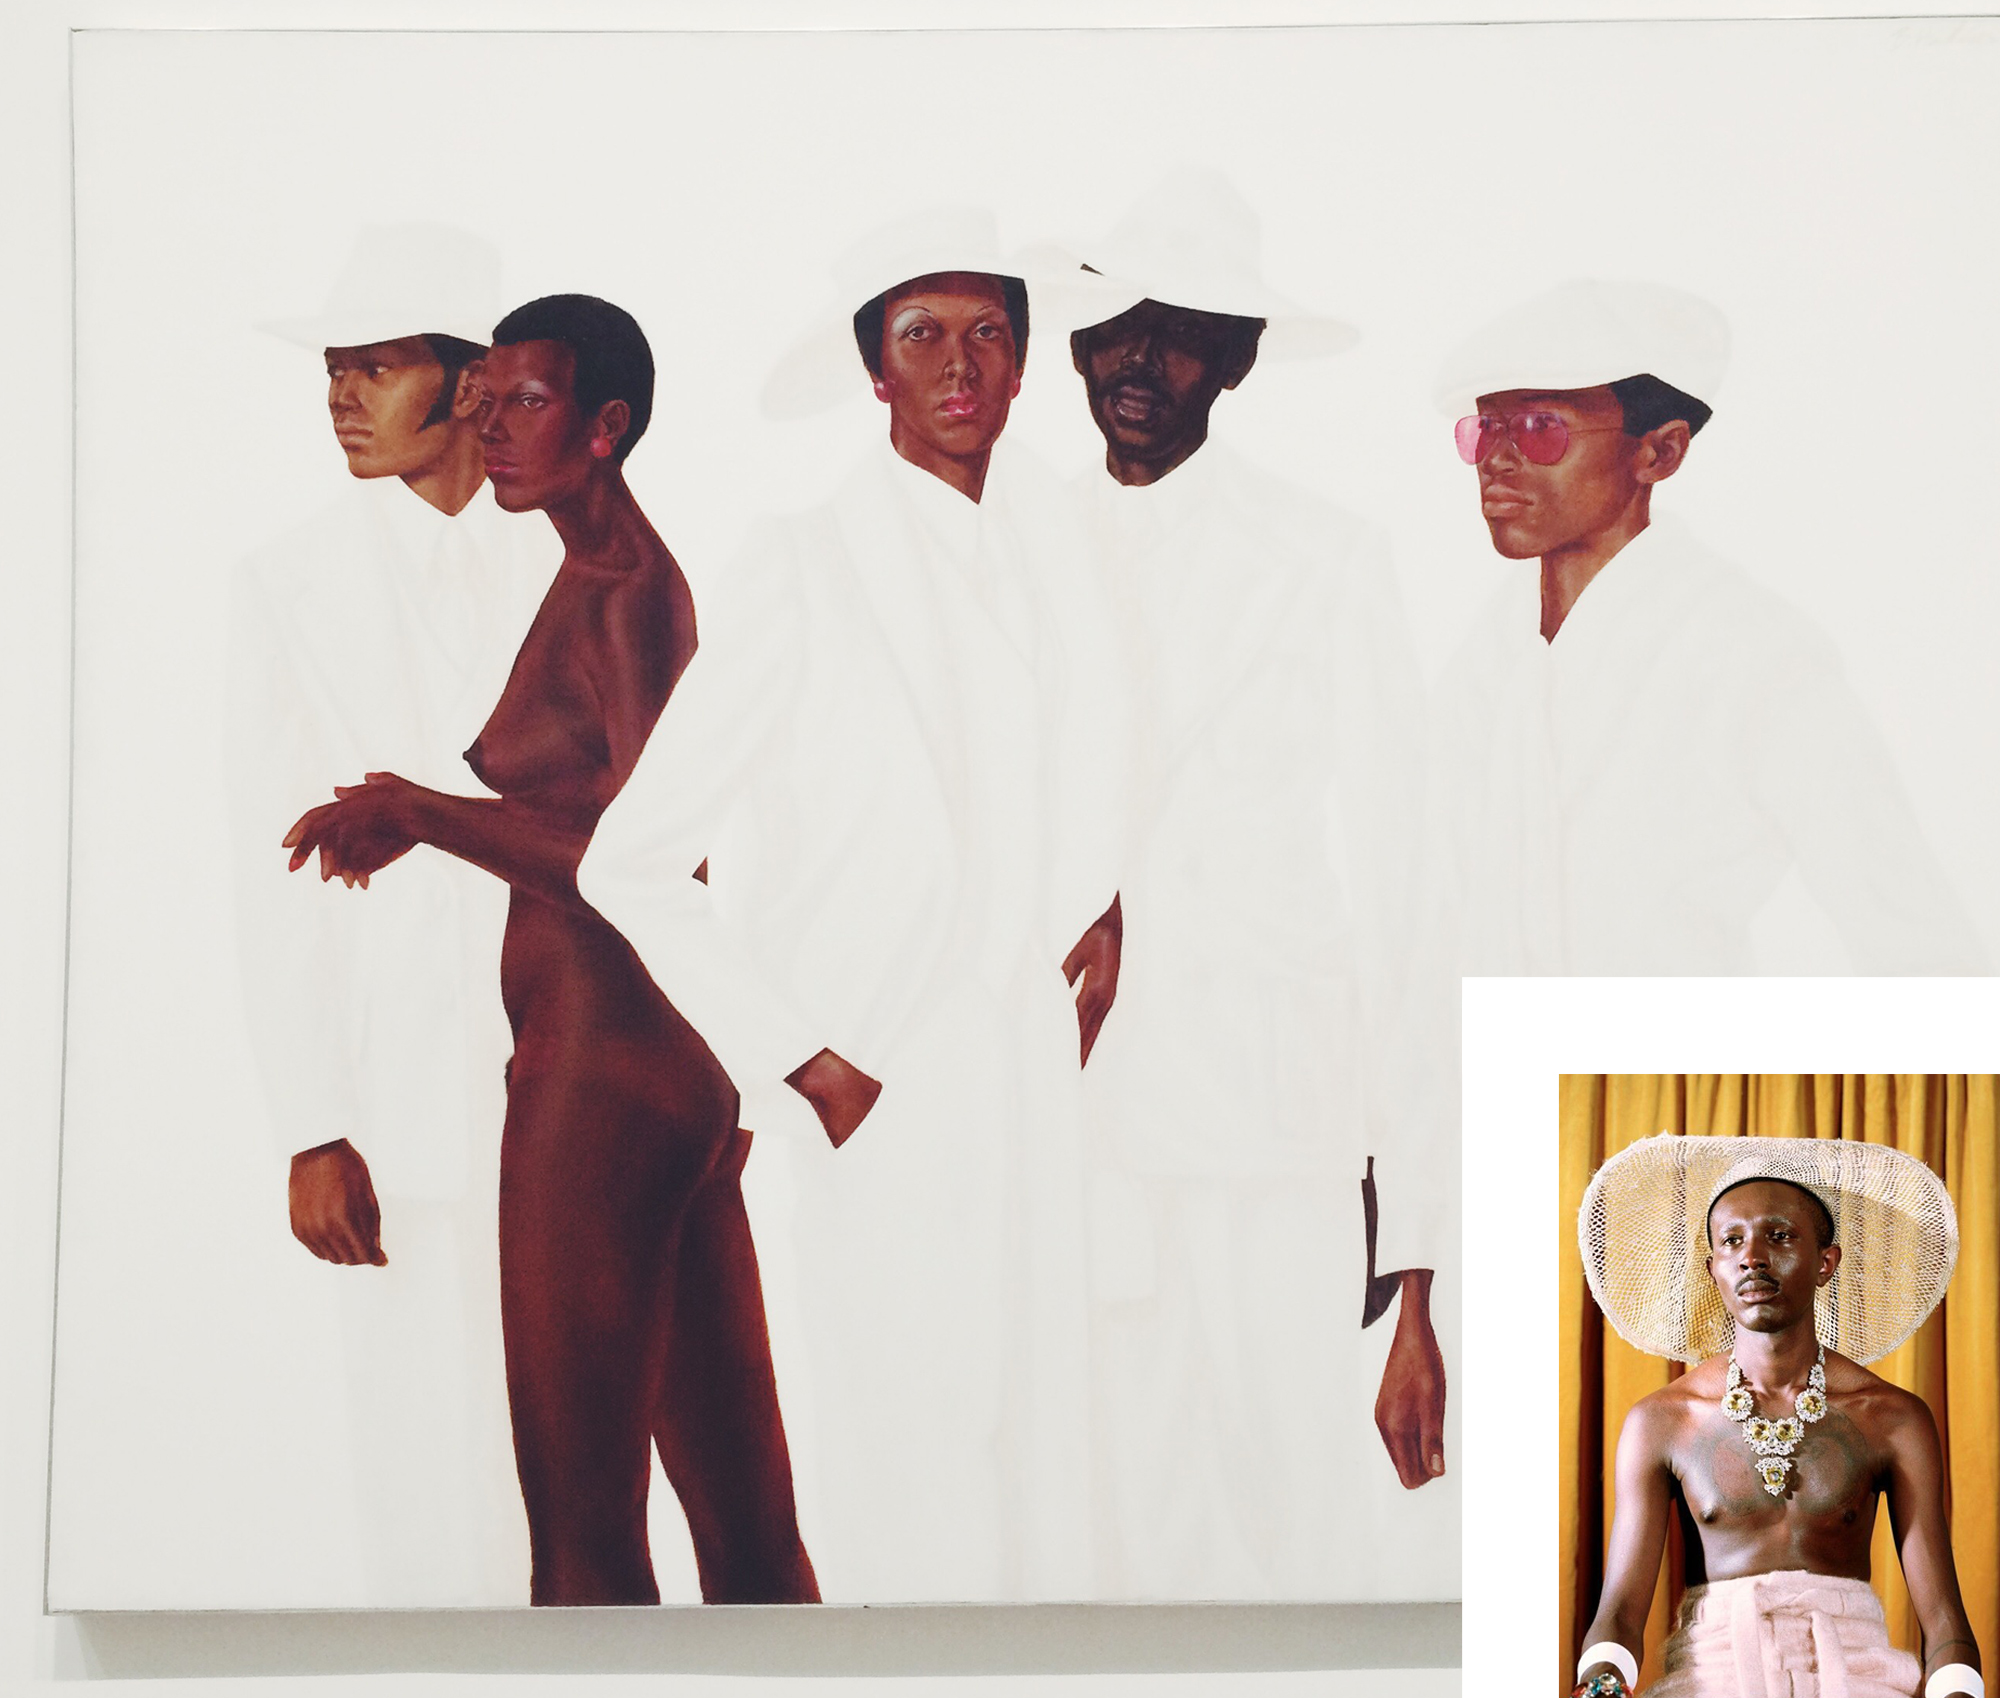 Grace Wales Bonner, Barkley Hendricks, Soul of a Nation, black power, London, art, exhibition, lifestyle